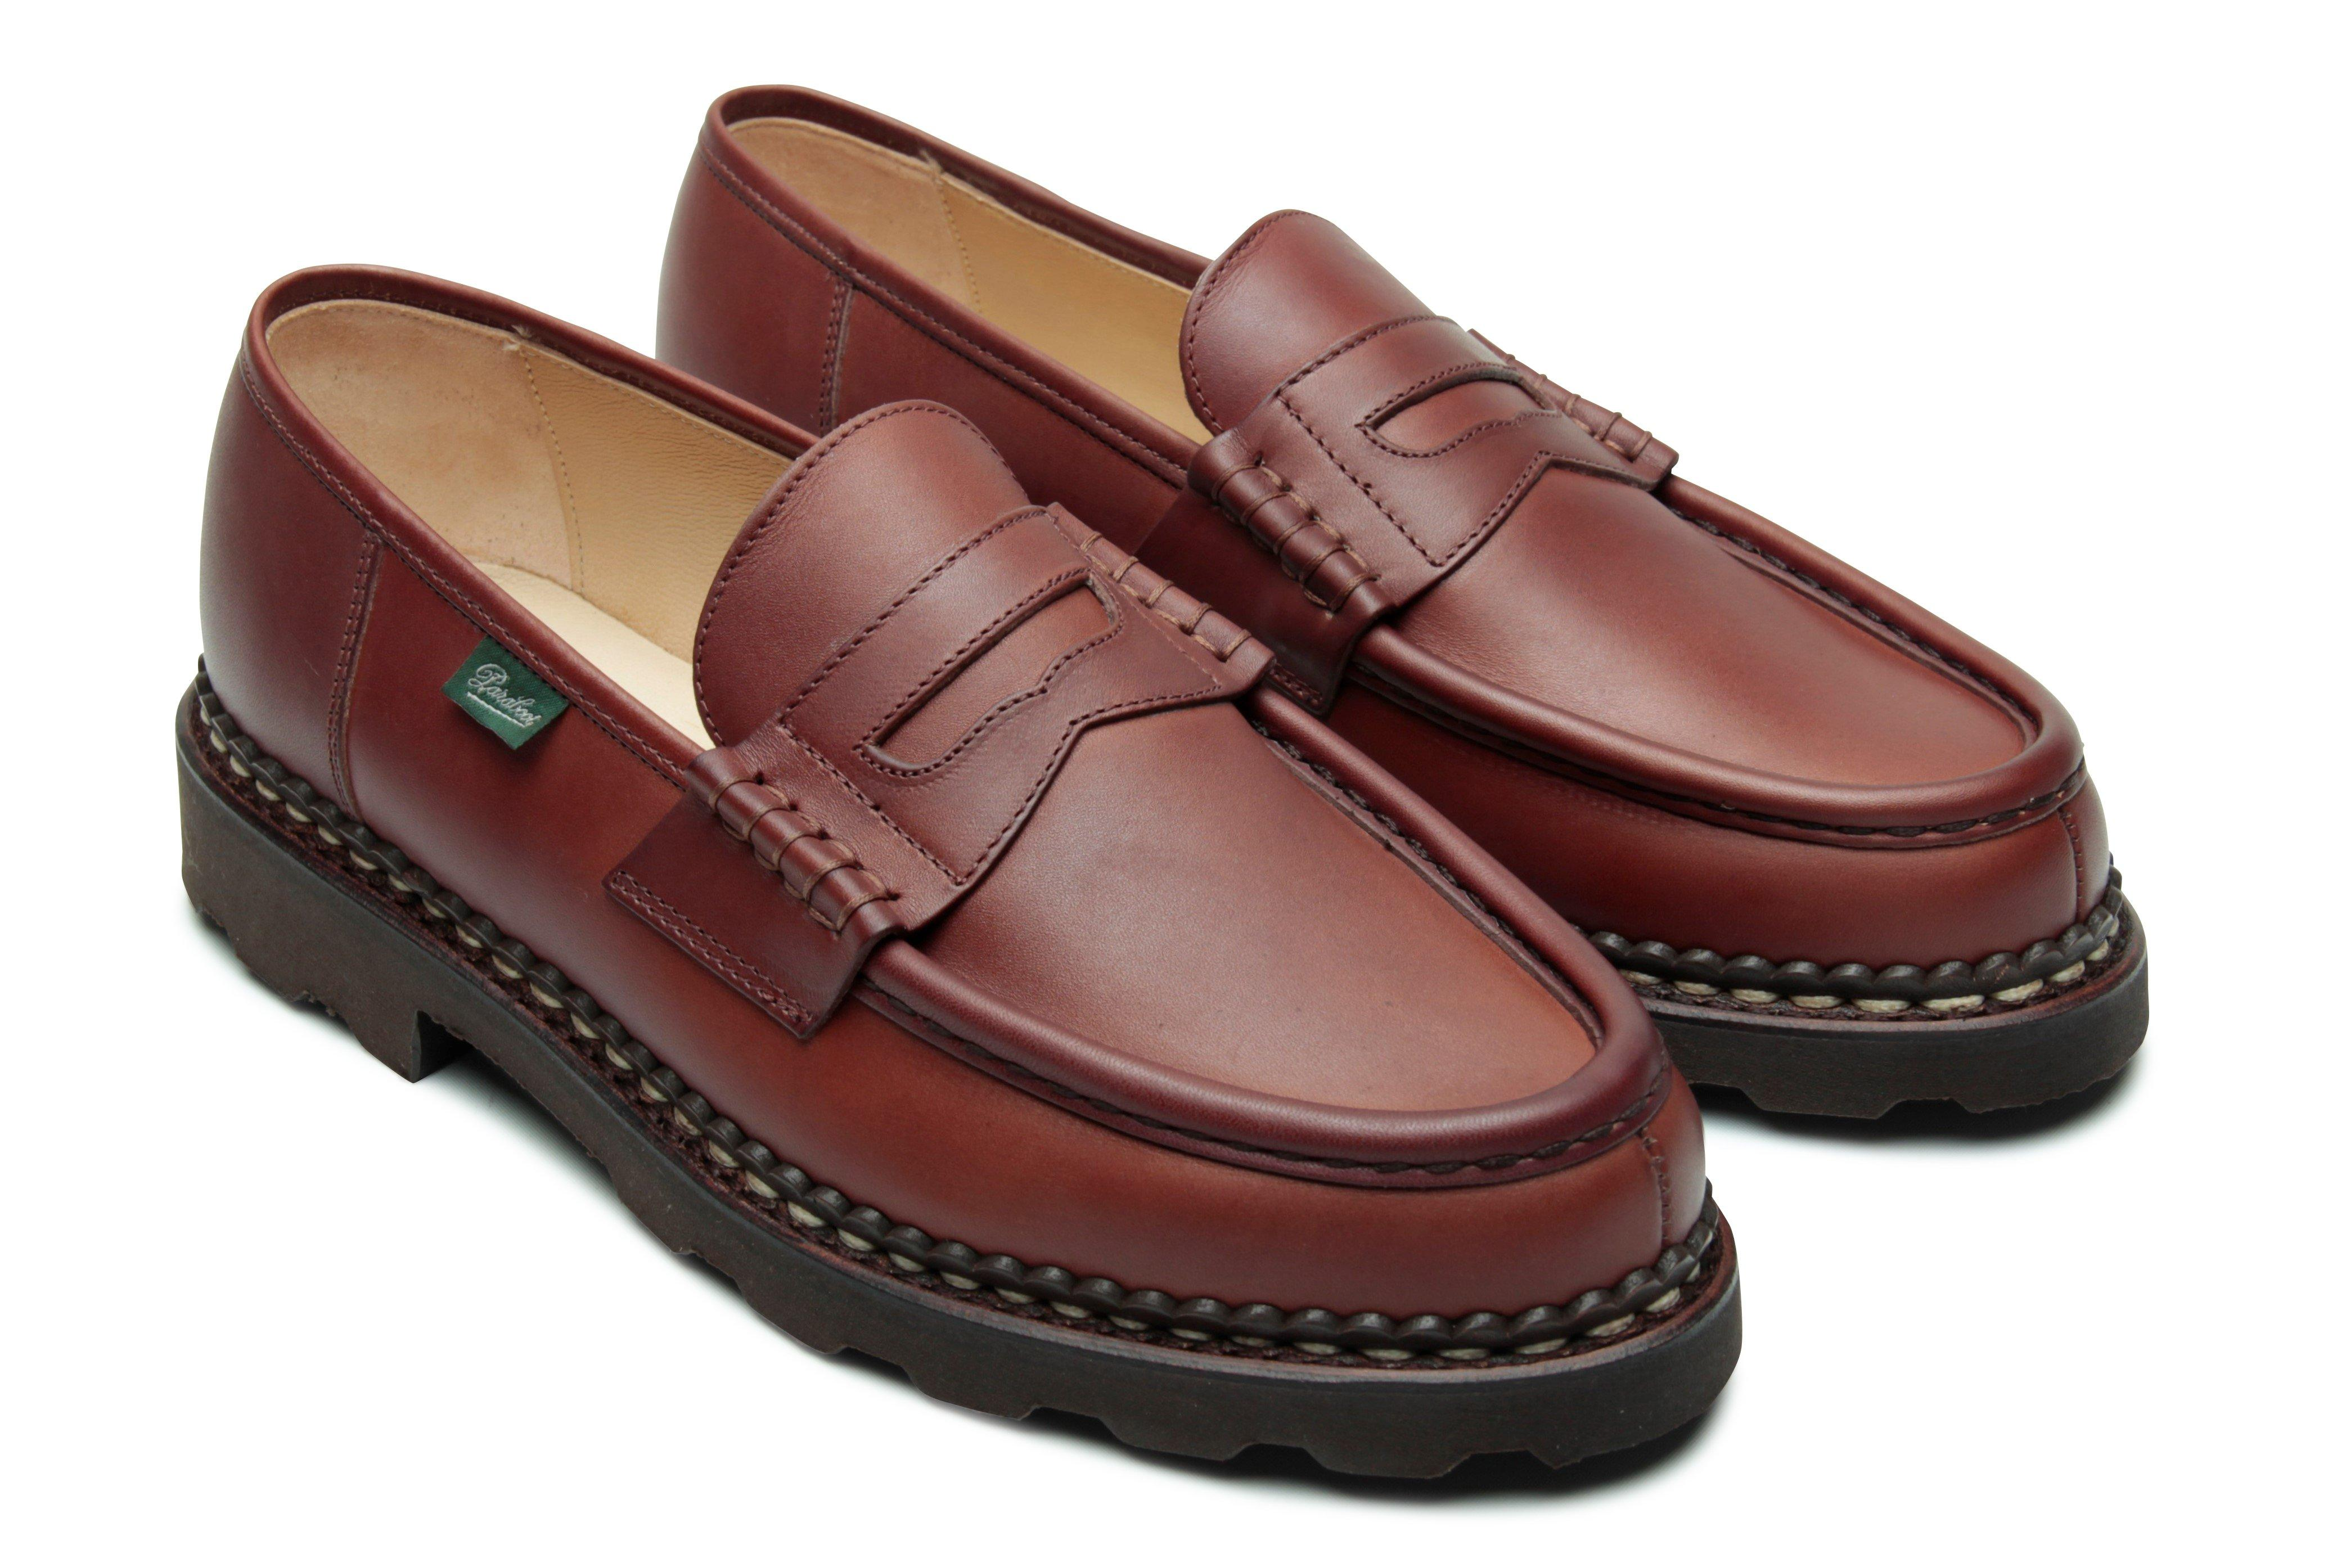 #099413 Made in France Paraboot Reims//Marche Marron-Lis Cafe Brown